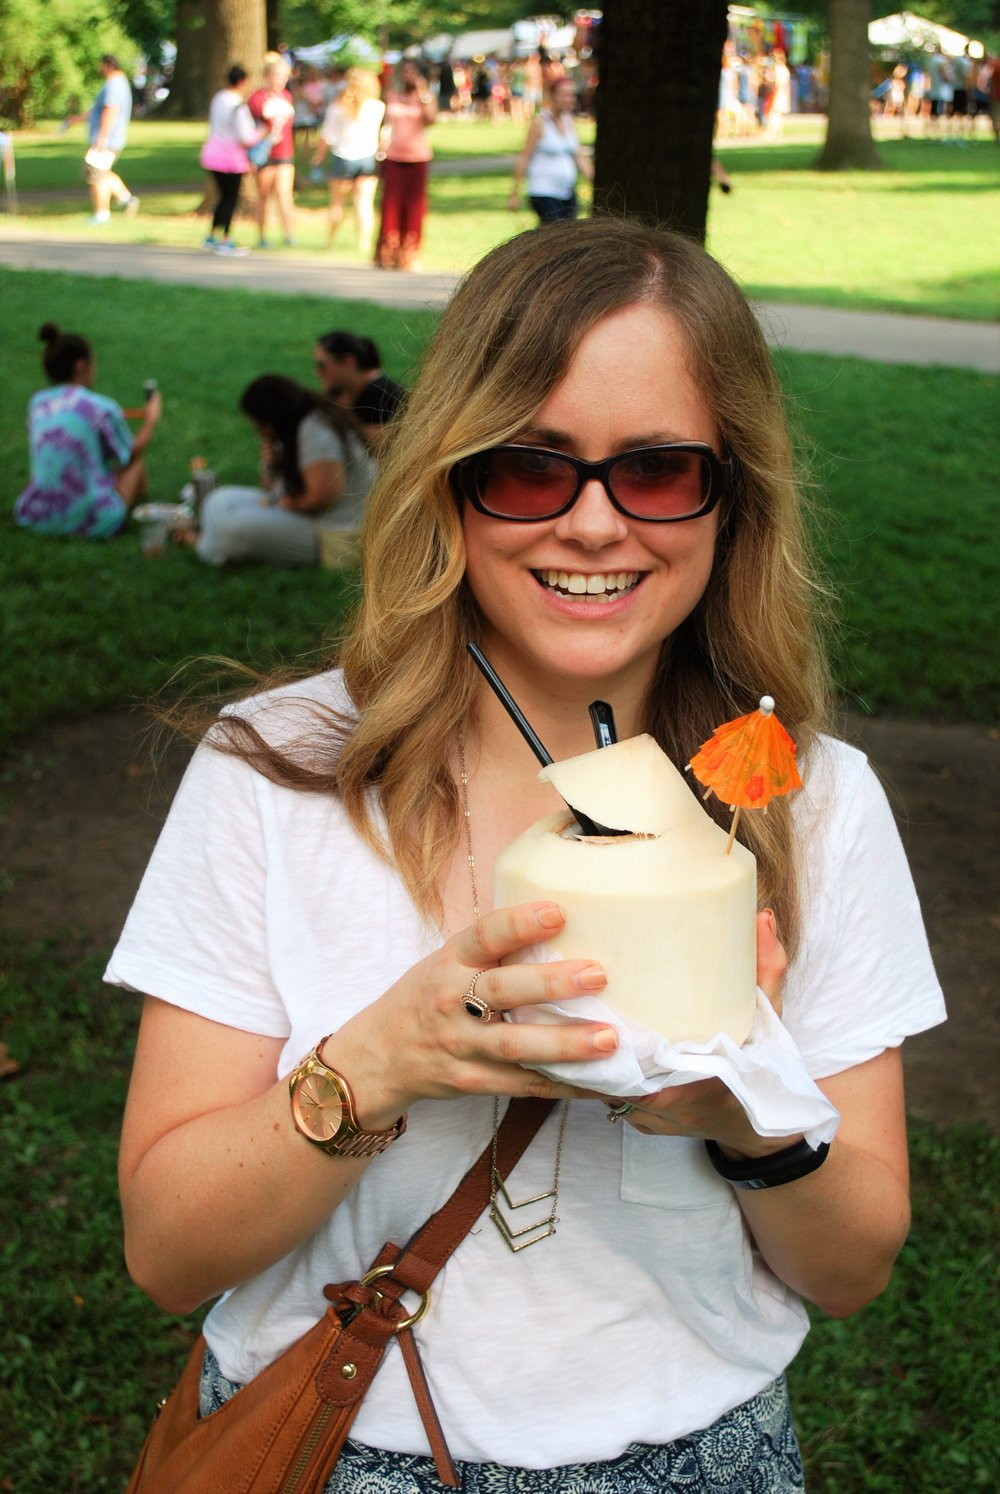 Cooling off with some fresh coconut water